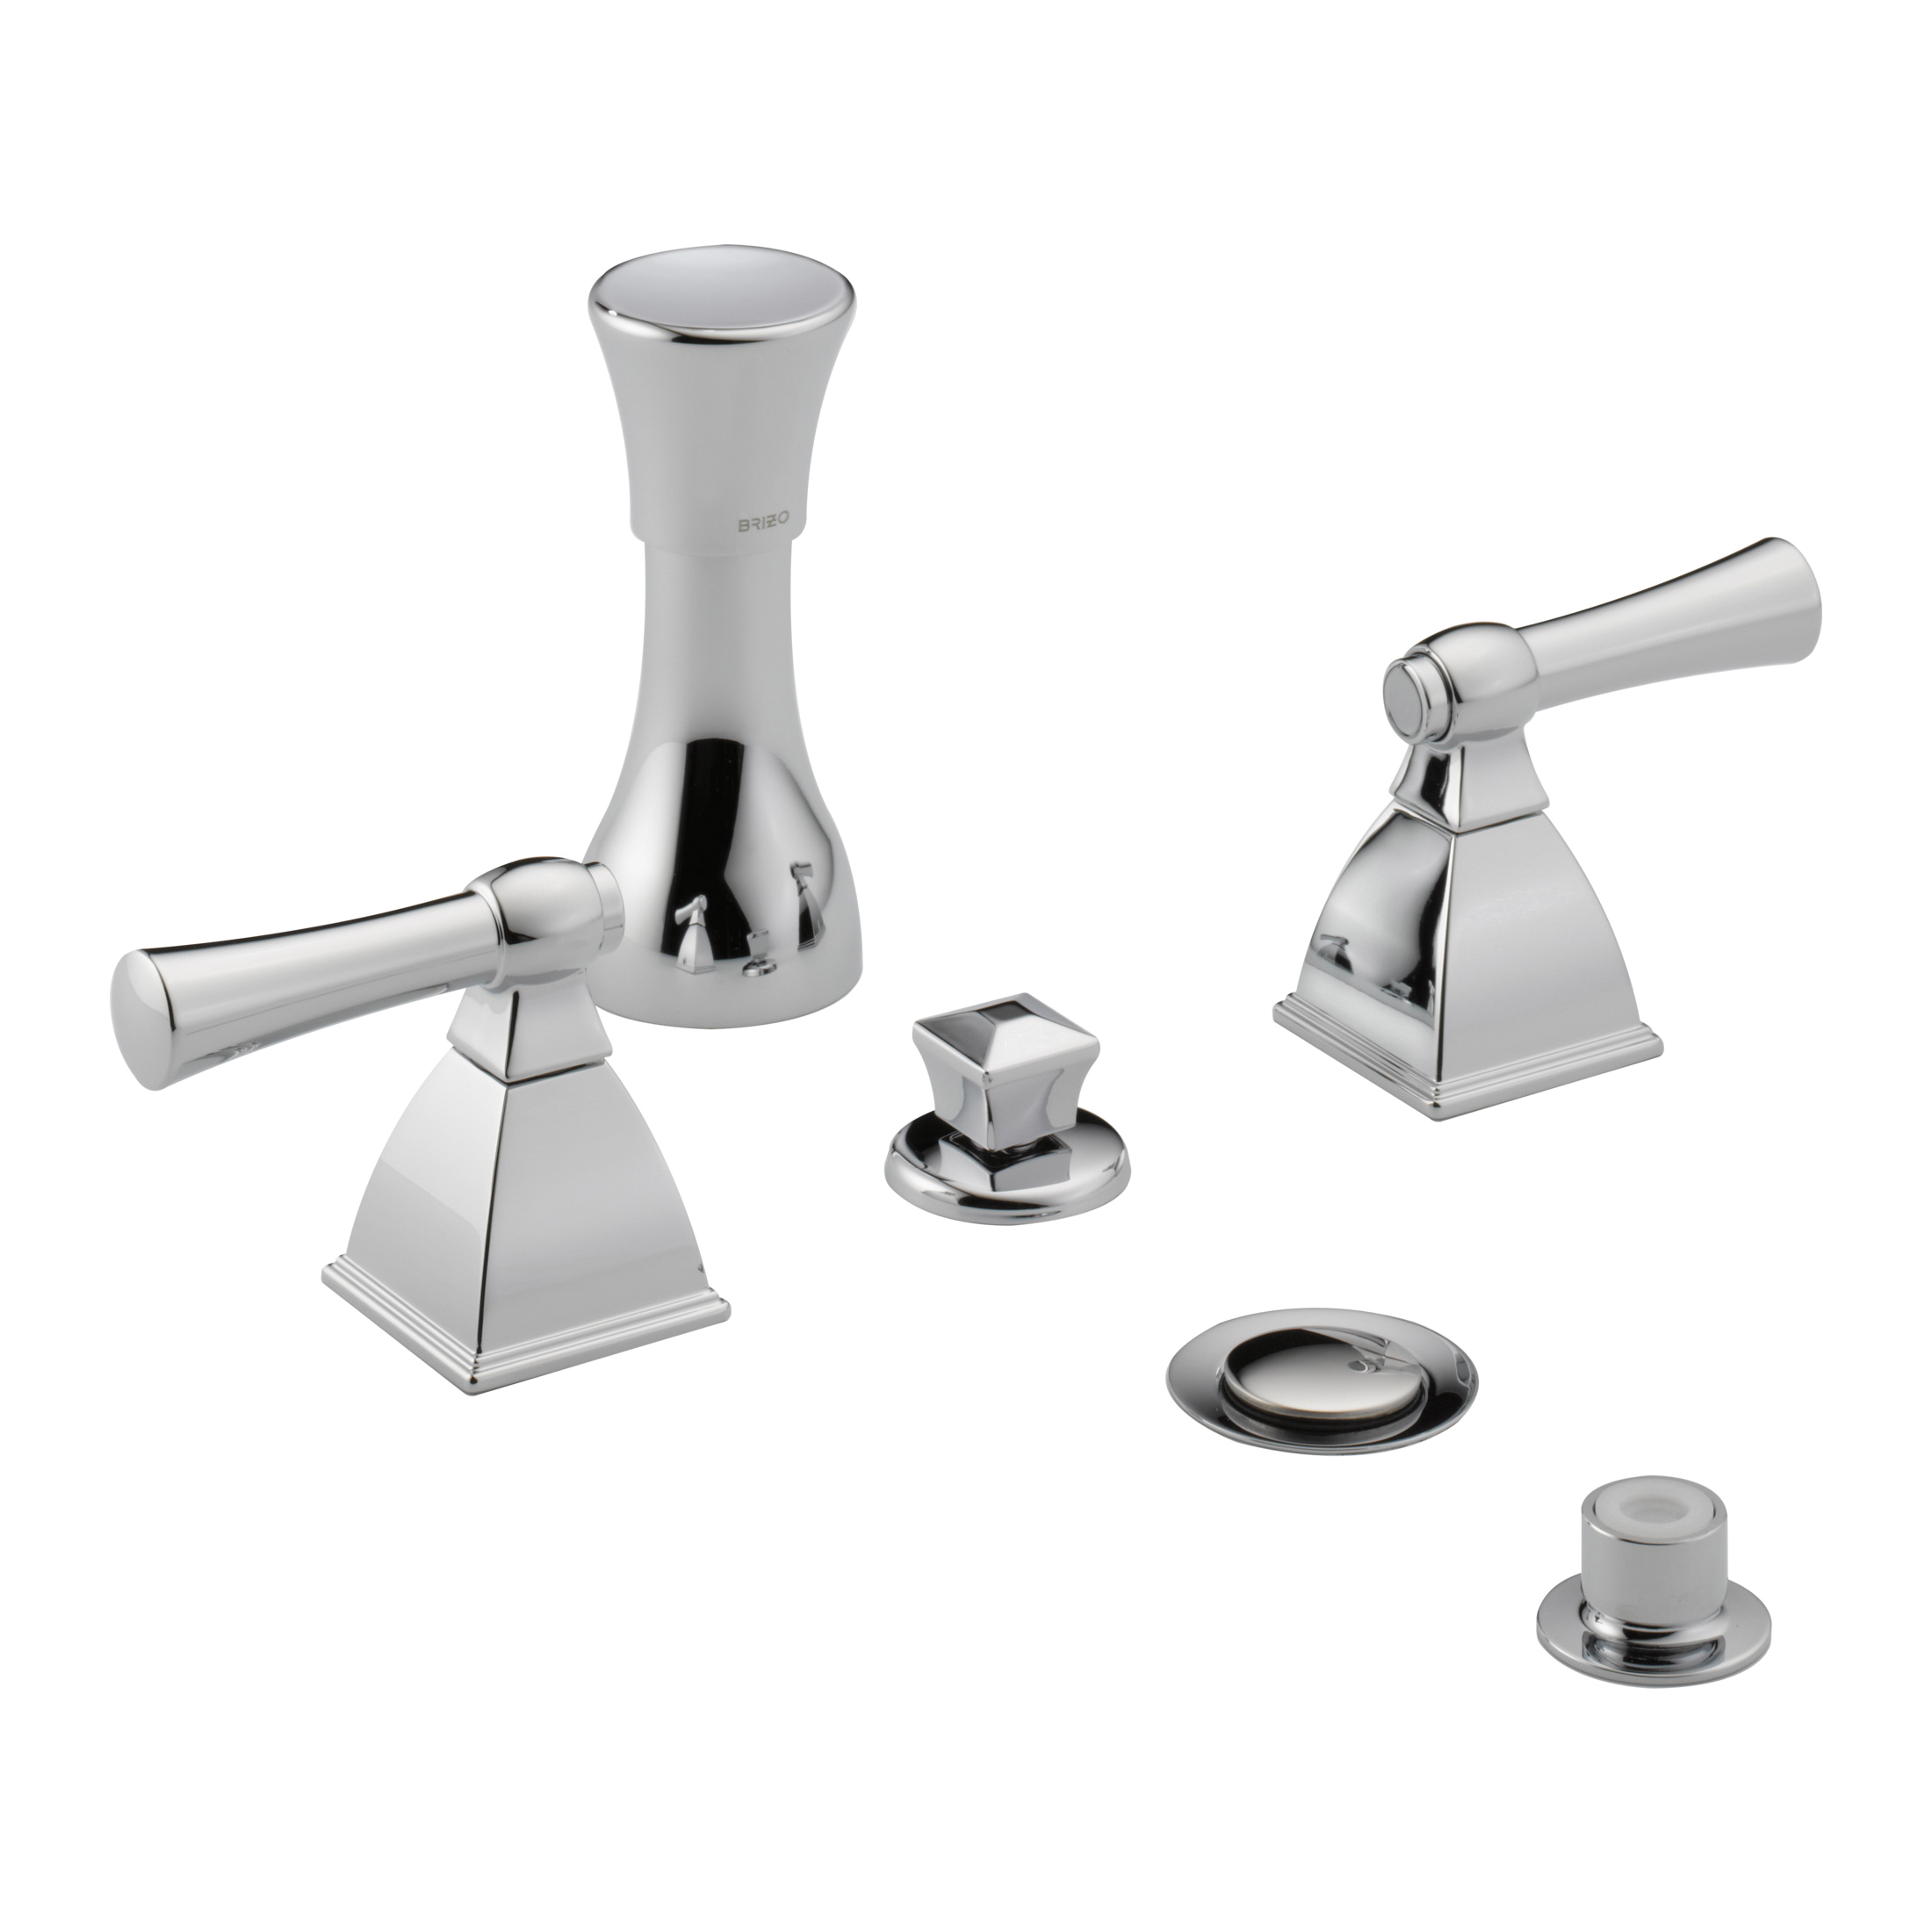 Brizo® 6340-PC Vesi® Bidet Faucet, 5 to 8 in Center, 3 Handles, Pop-Up Drain, Chrome Plated, Domestic, Commercial